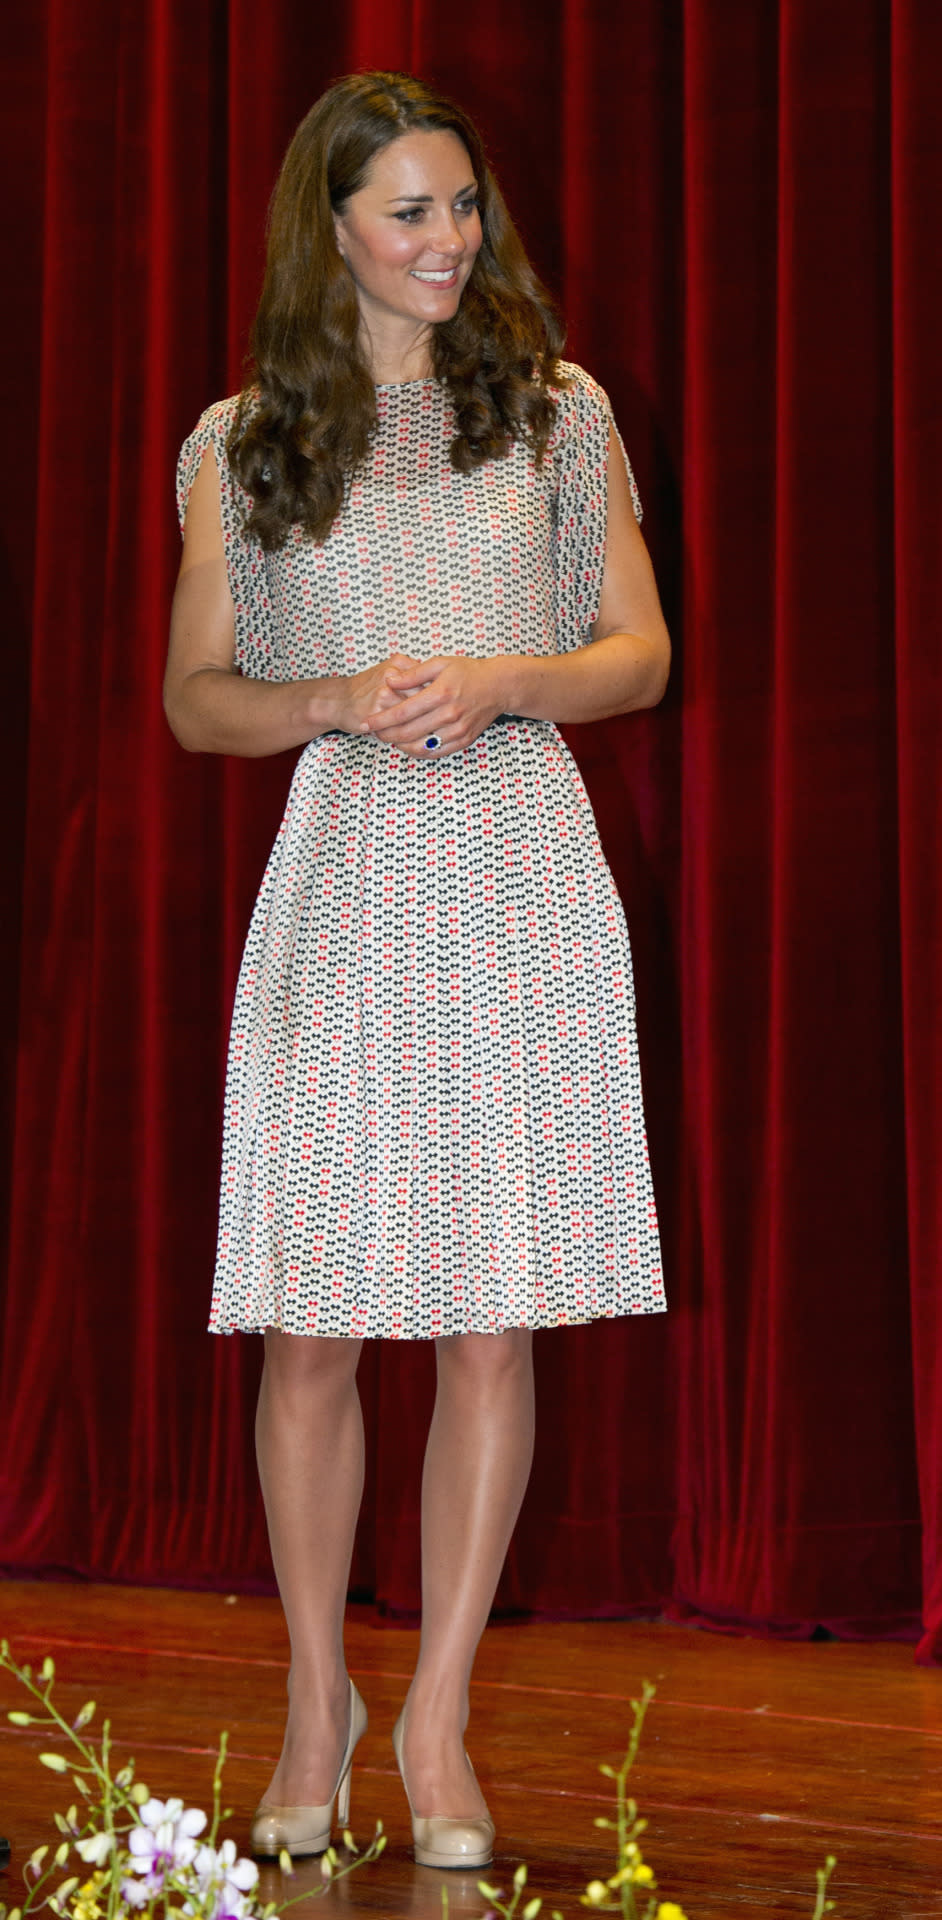 <p>The Duchess spent a day in Singapore in a printed top and pleated skirt by Raoul. She finished with nude L.K. Bennett heels. </p><p><i>[Photo: PA]</i></p>